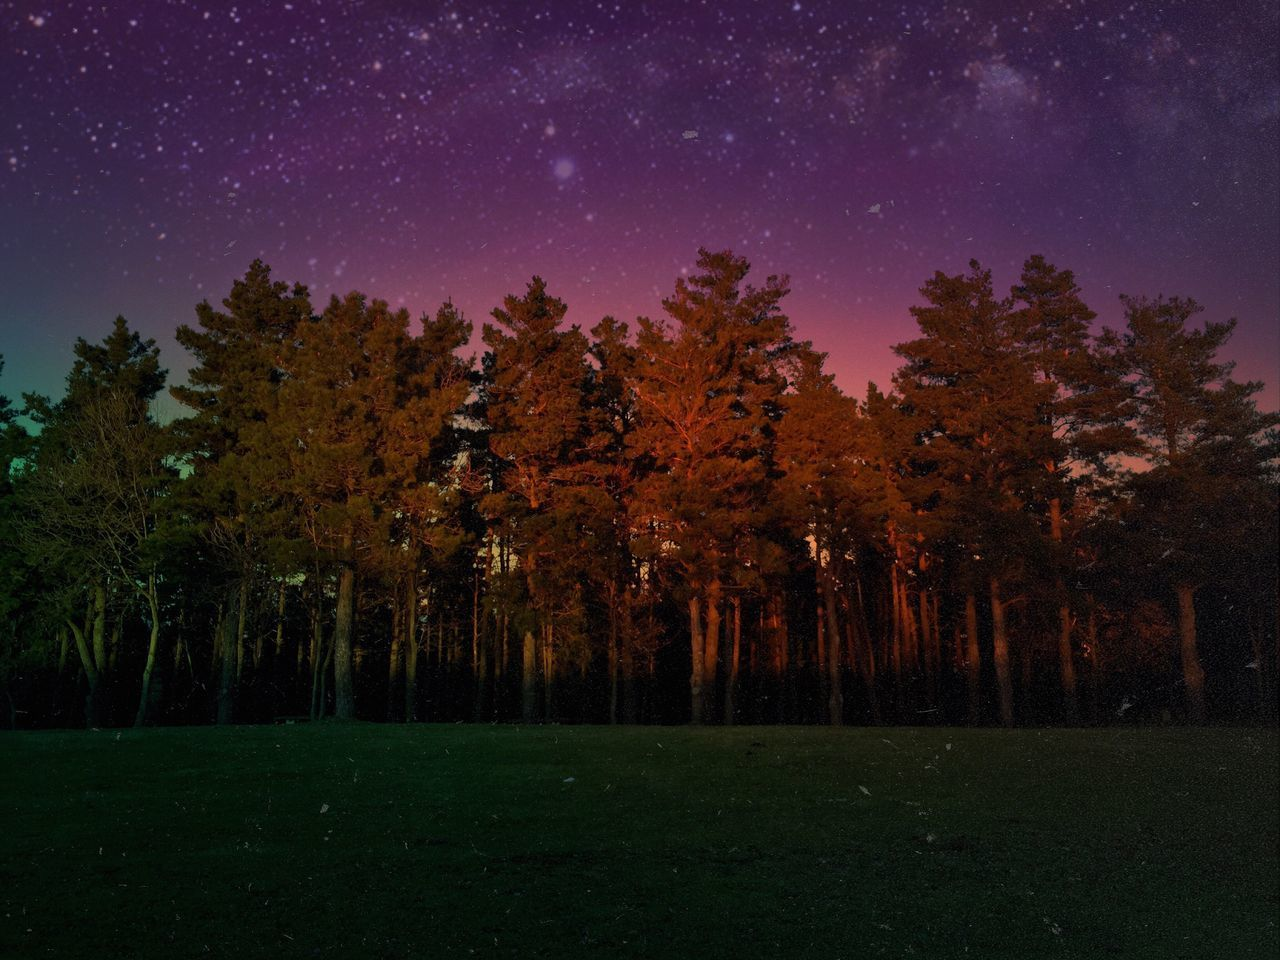 The Great Outdoors - 2017 EyeEm Awards Tree Nature Night Beauty In Nature Tranquility Star - Space Tranquil Scene Scenics Majestic No People Landscape Growth Outdoors Autumn Forest Sky Astronomy Starry Space Constellation Sunset Colors Light And Shadow Nature instagram: @ismael_j.s Place Of Heart Place Of Heart